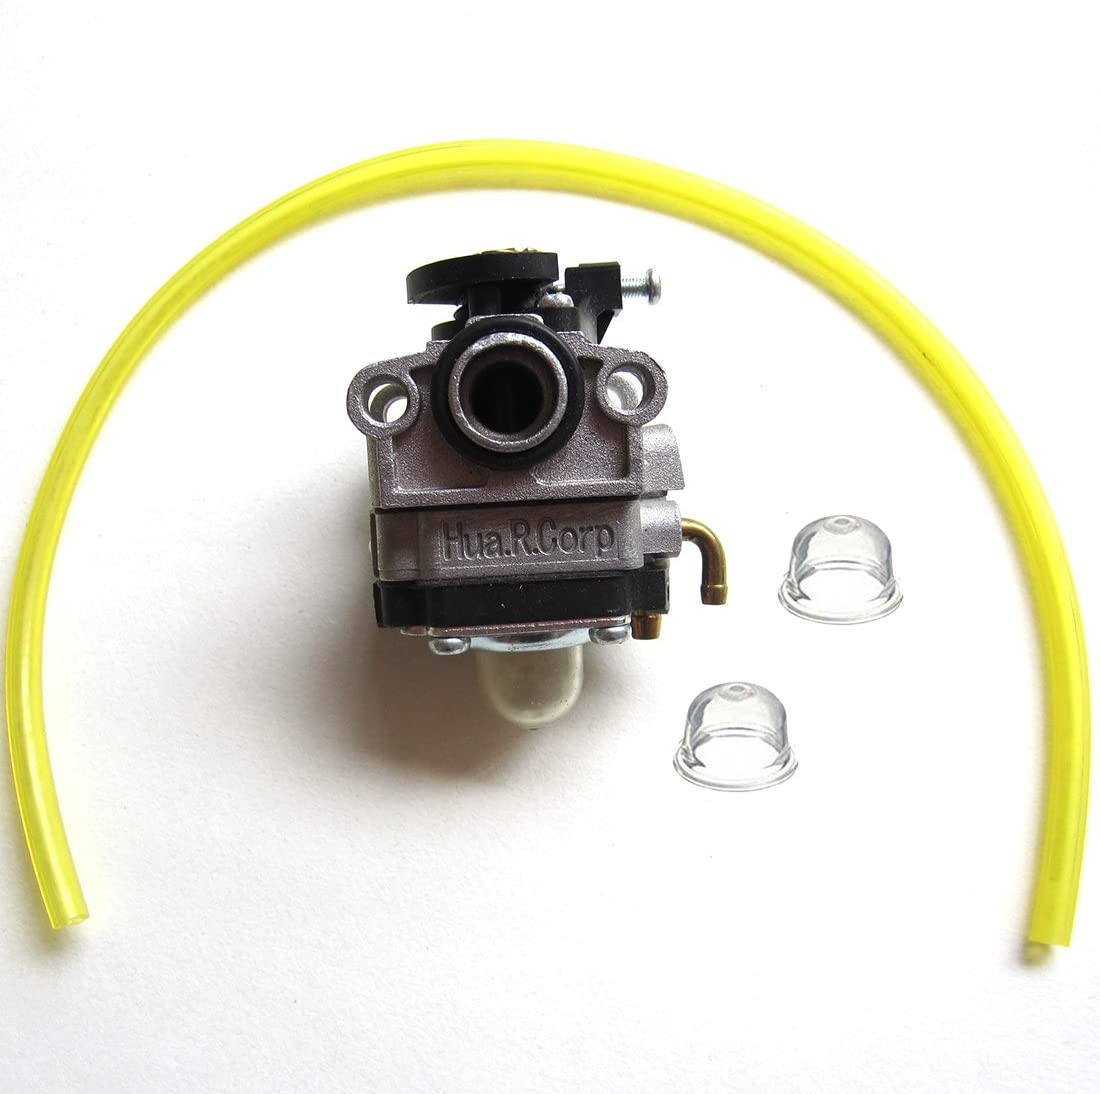 HQParts USA Shipping Carburetor with Primer Bulb Fuel Line for Shindaiwa LE230 PB230 TCX230 X230 C230 F230 T230X T230XR-EMC Trimmer 20016-81021 WYL-19